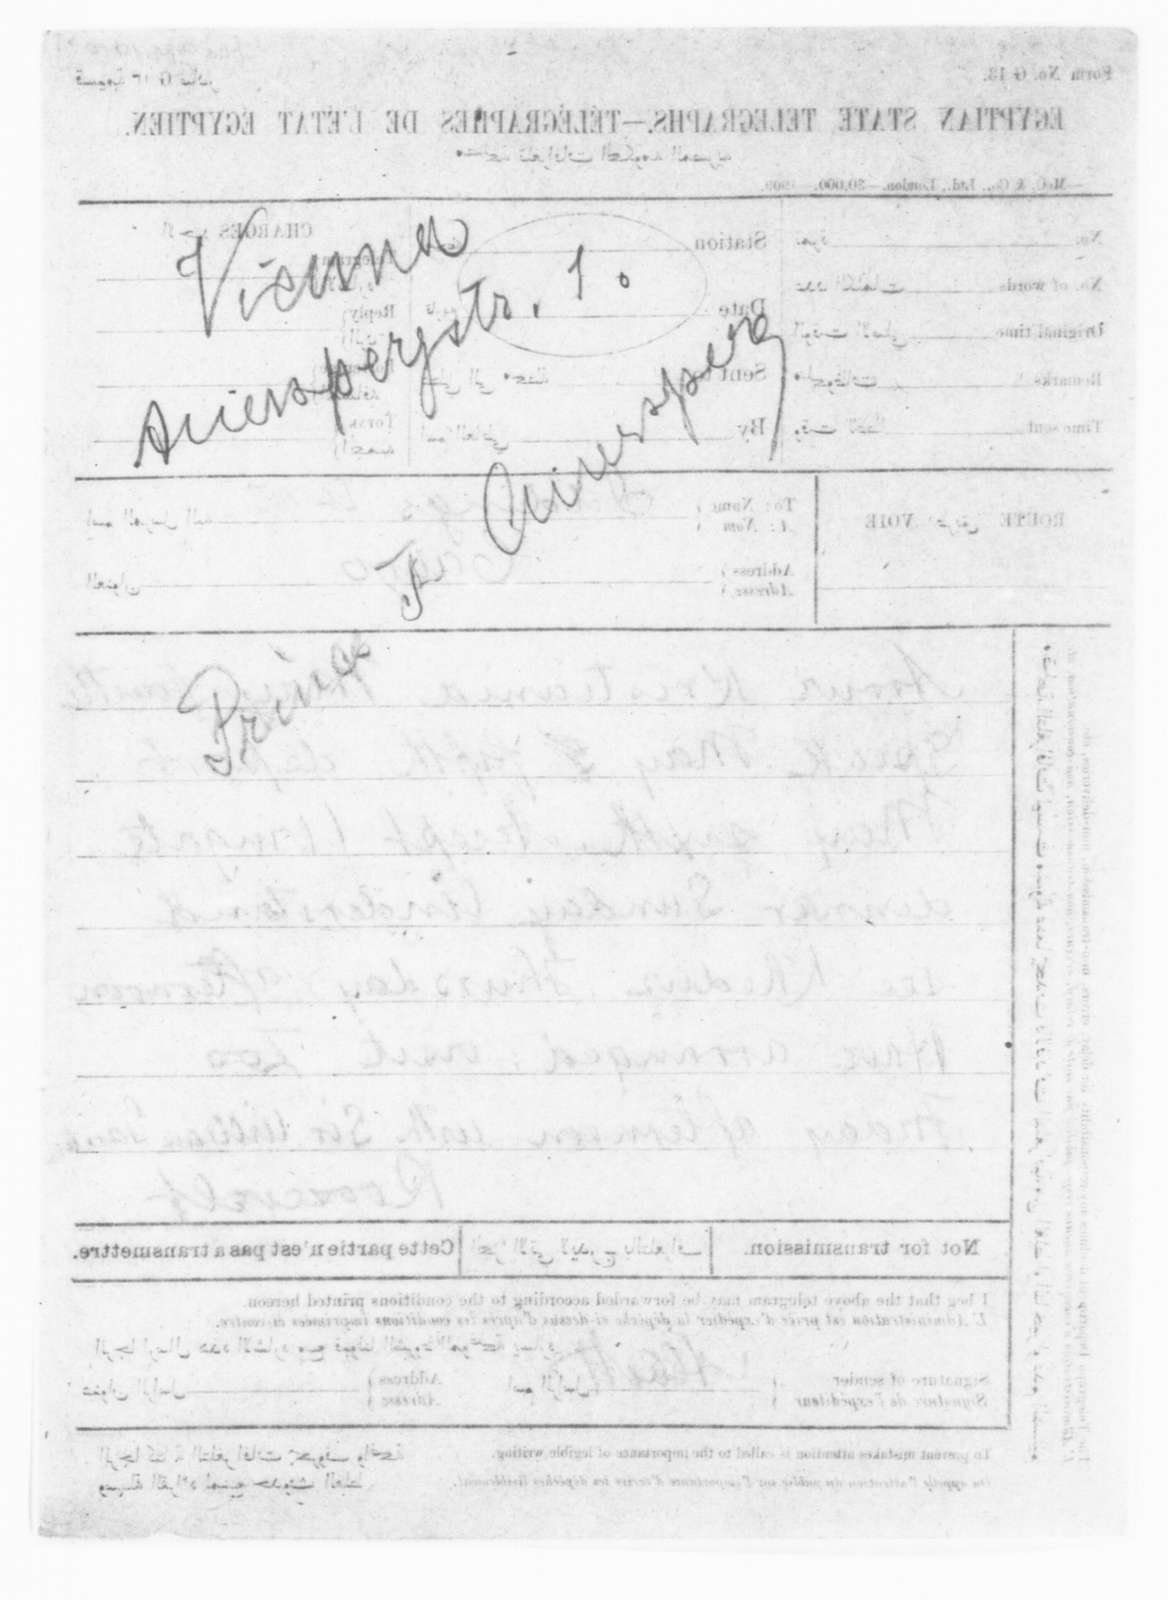 Theodore Roosevelt Papers: Series 3: Letters Sent, 1888-1919; Subseries 3B: Additional Copies of Letters Sent, 1888-1918; circa 1906-1914, May 25